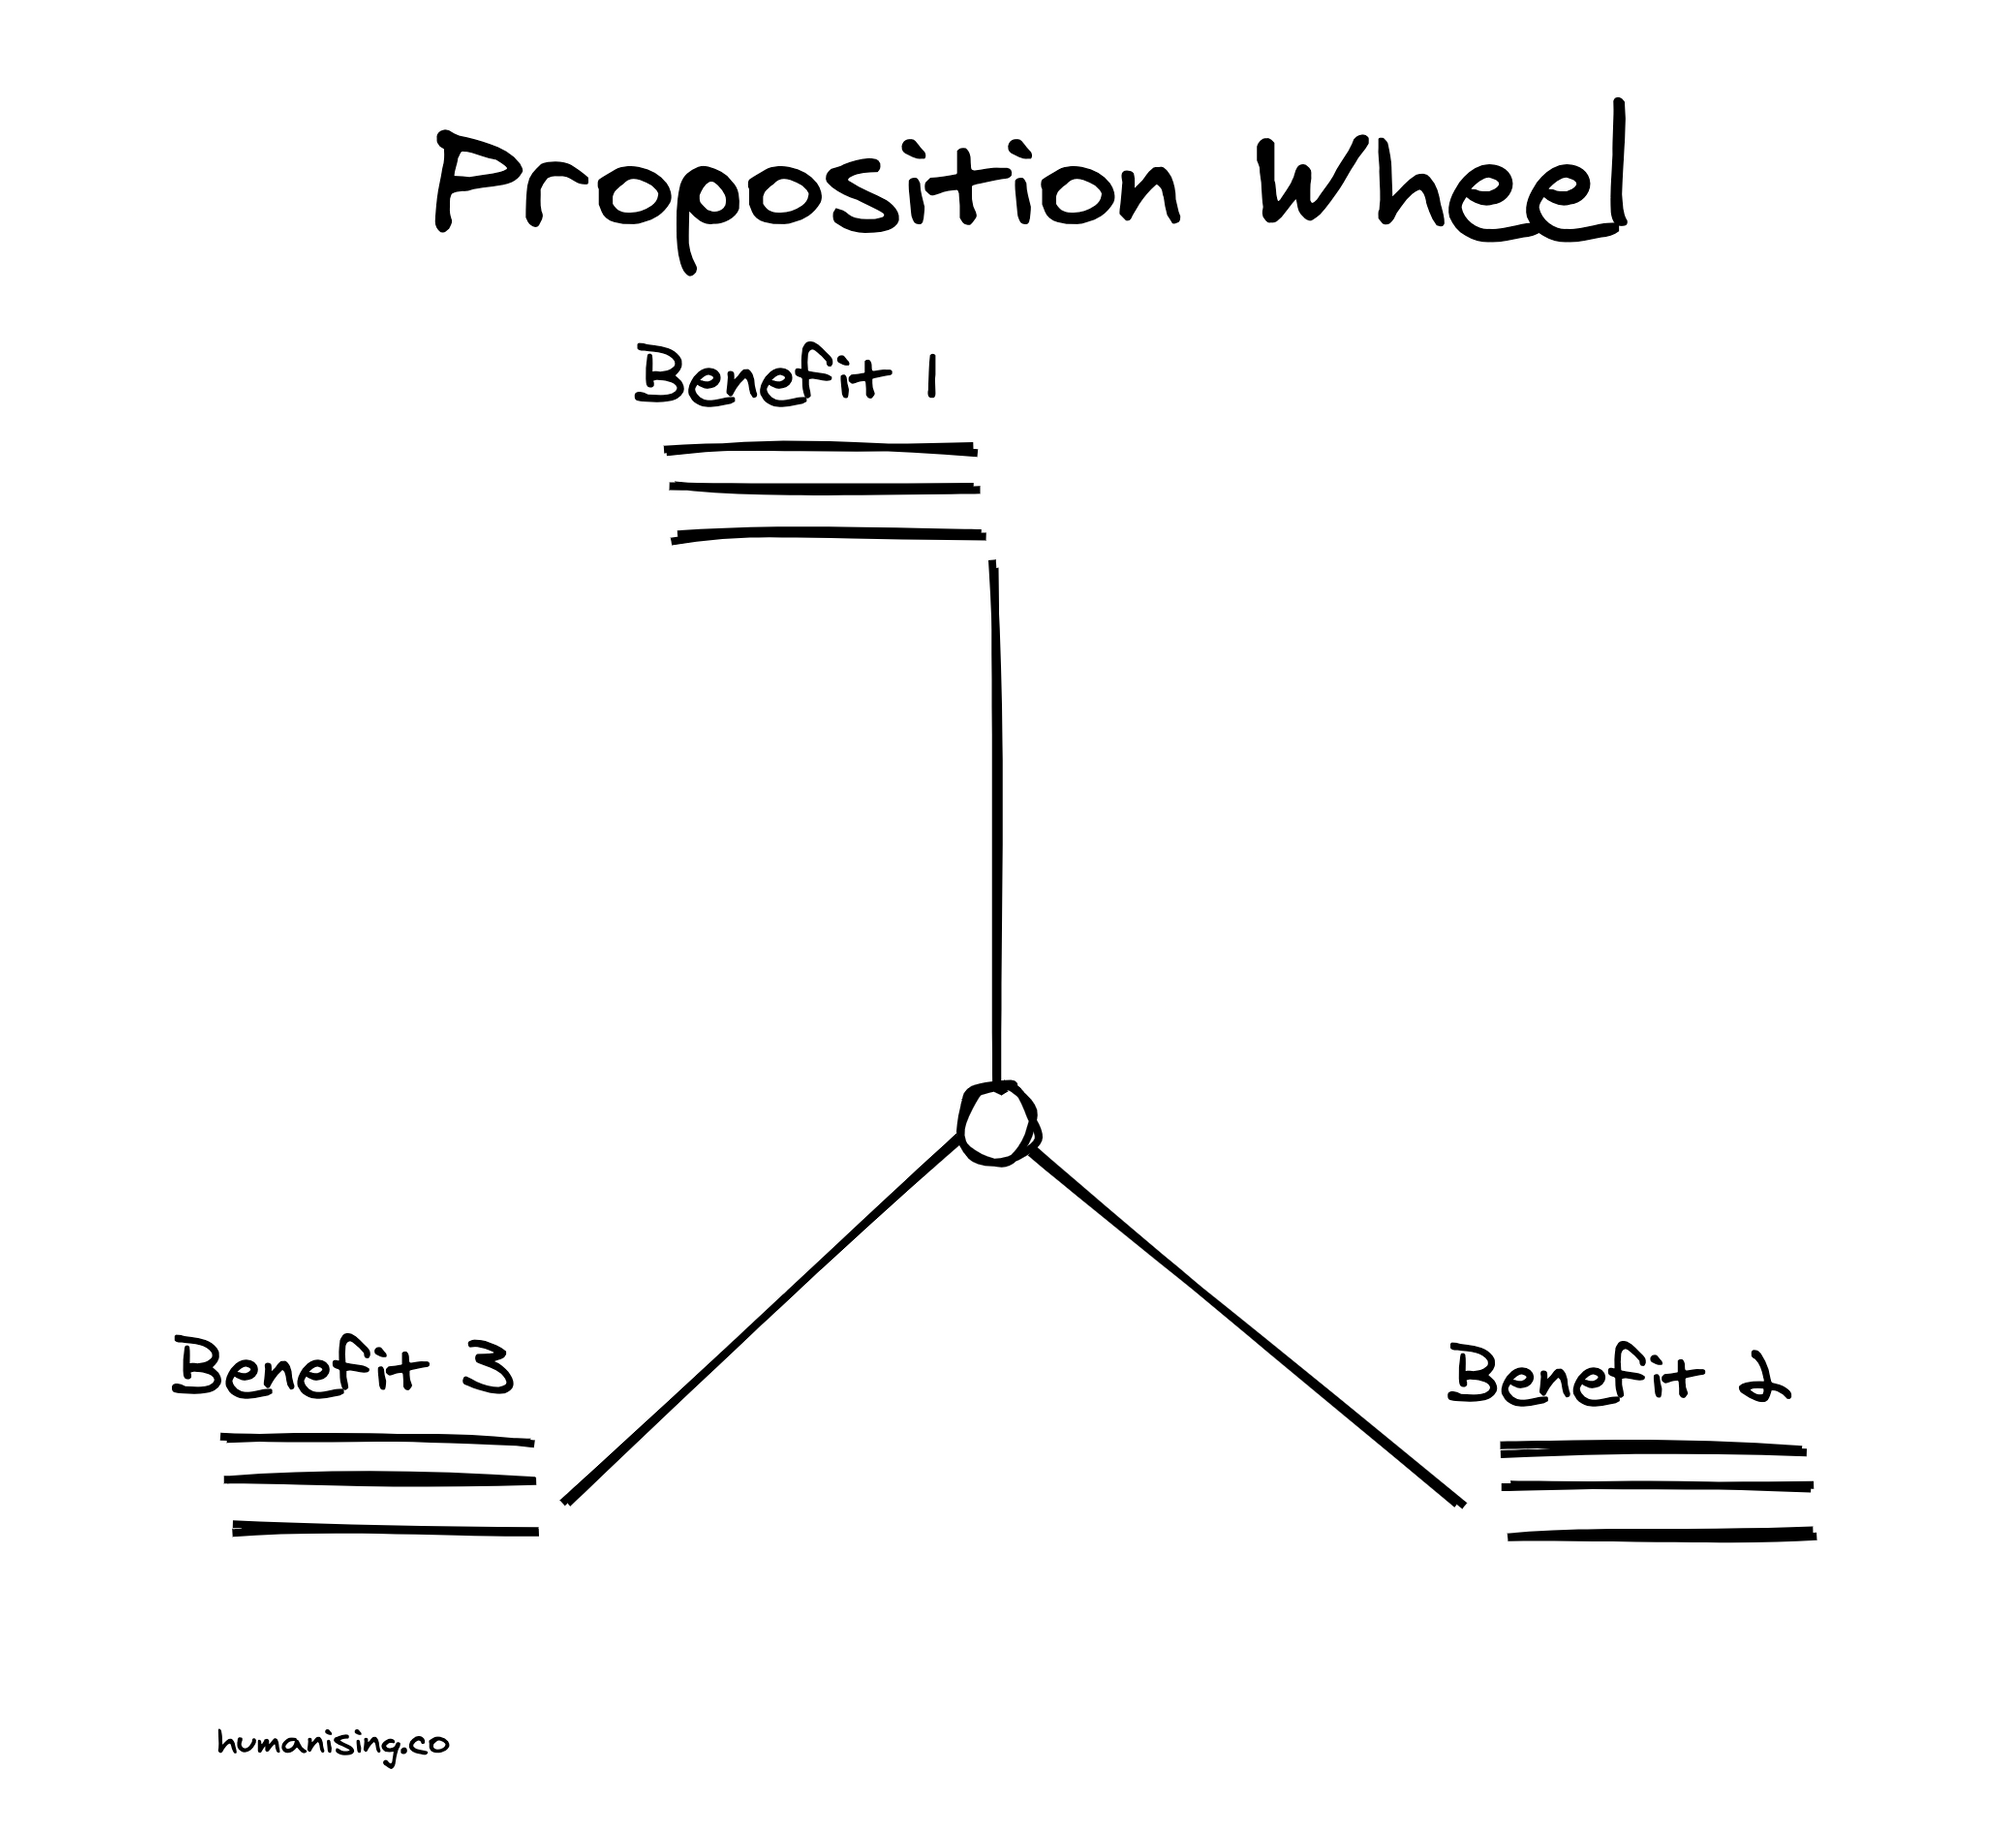 Proposition Design, Product Design, Product Marketing, Copywriting